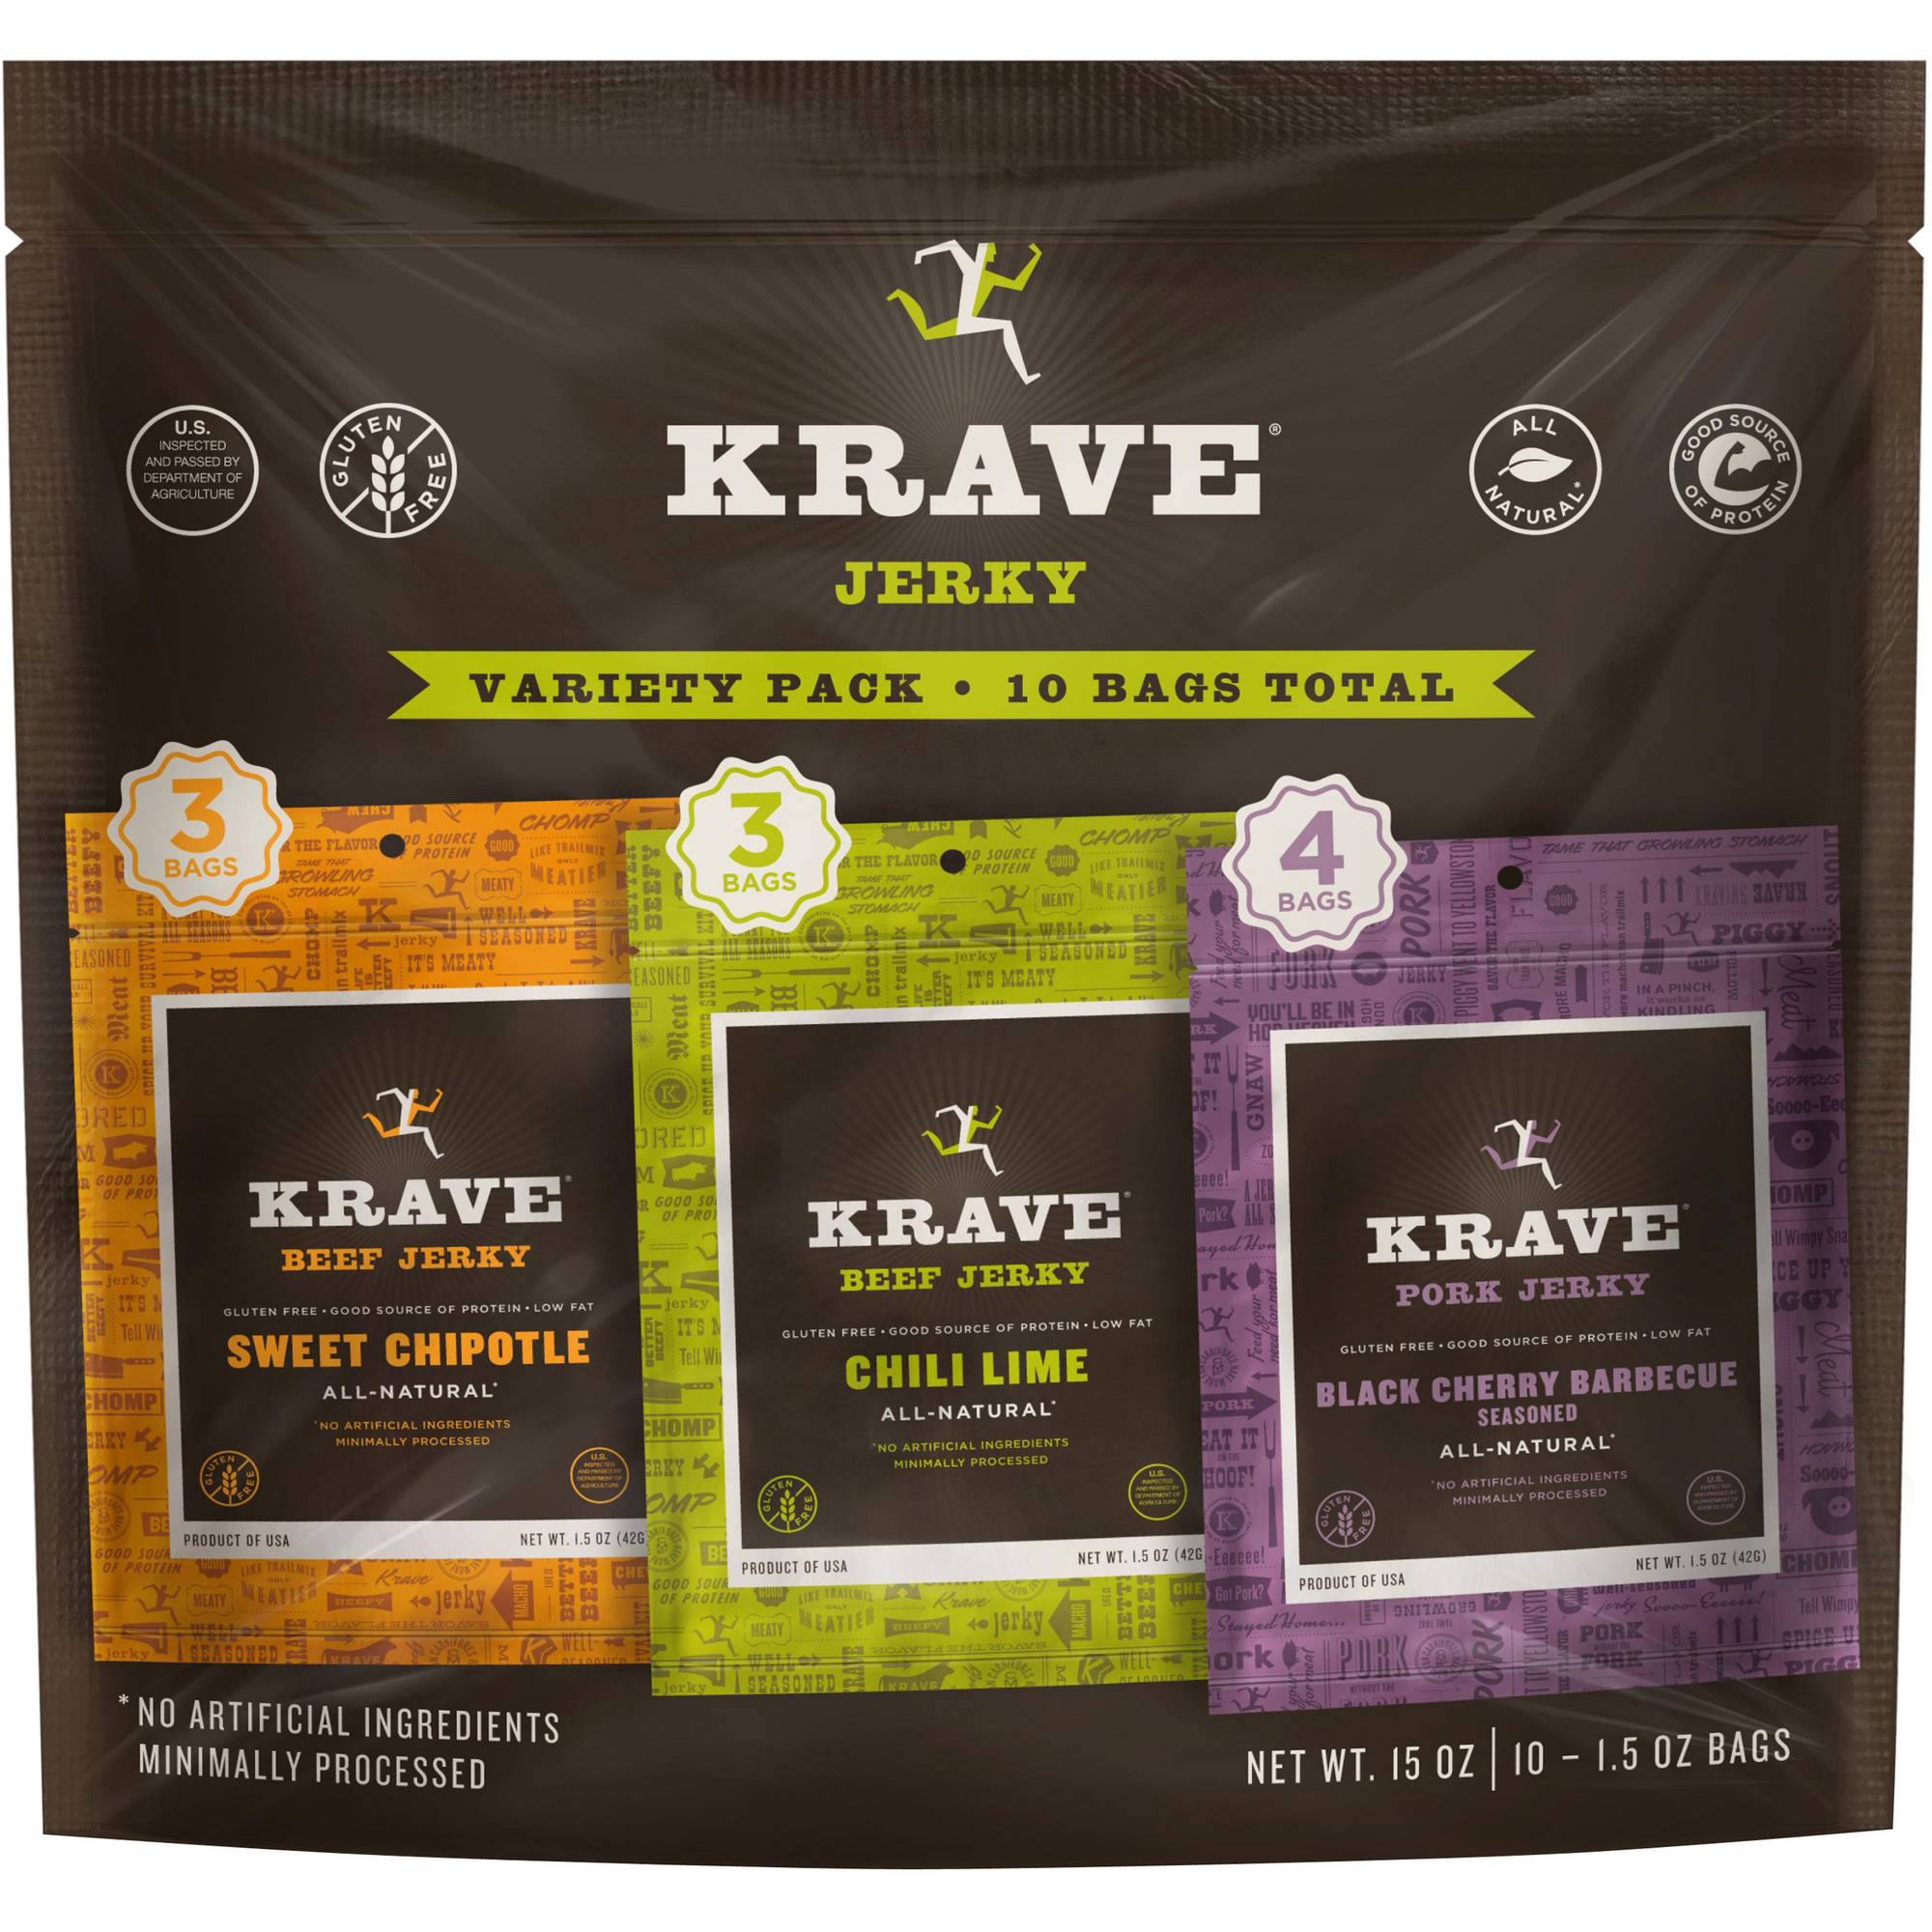 Krave Jerky Variety Pack (3 Krave Jerky Chili Lime, 3 Krave Jerky Sweet Chipotle and 4 Krave Jerky Black Cherry Barbecue), 10 ct, 1.5 oz each